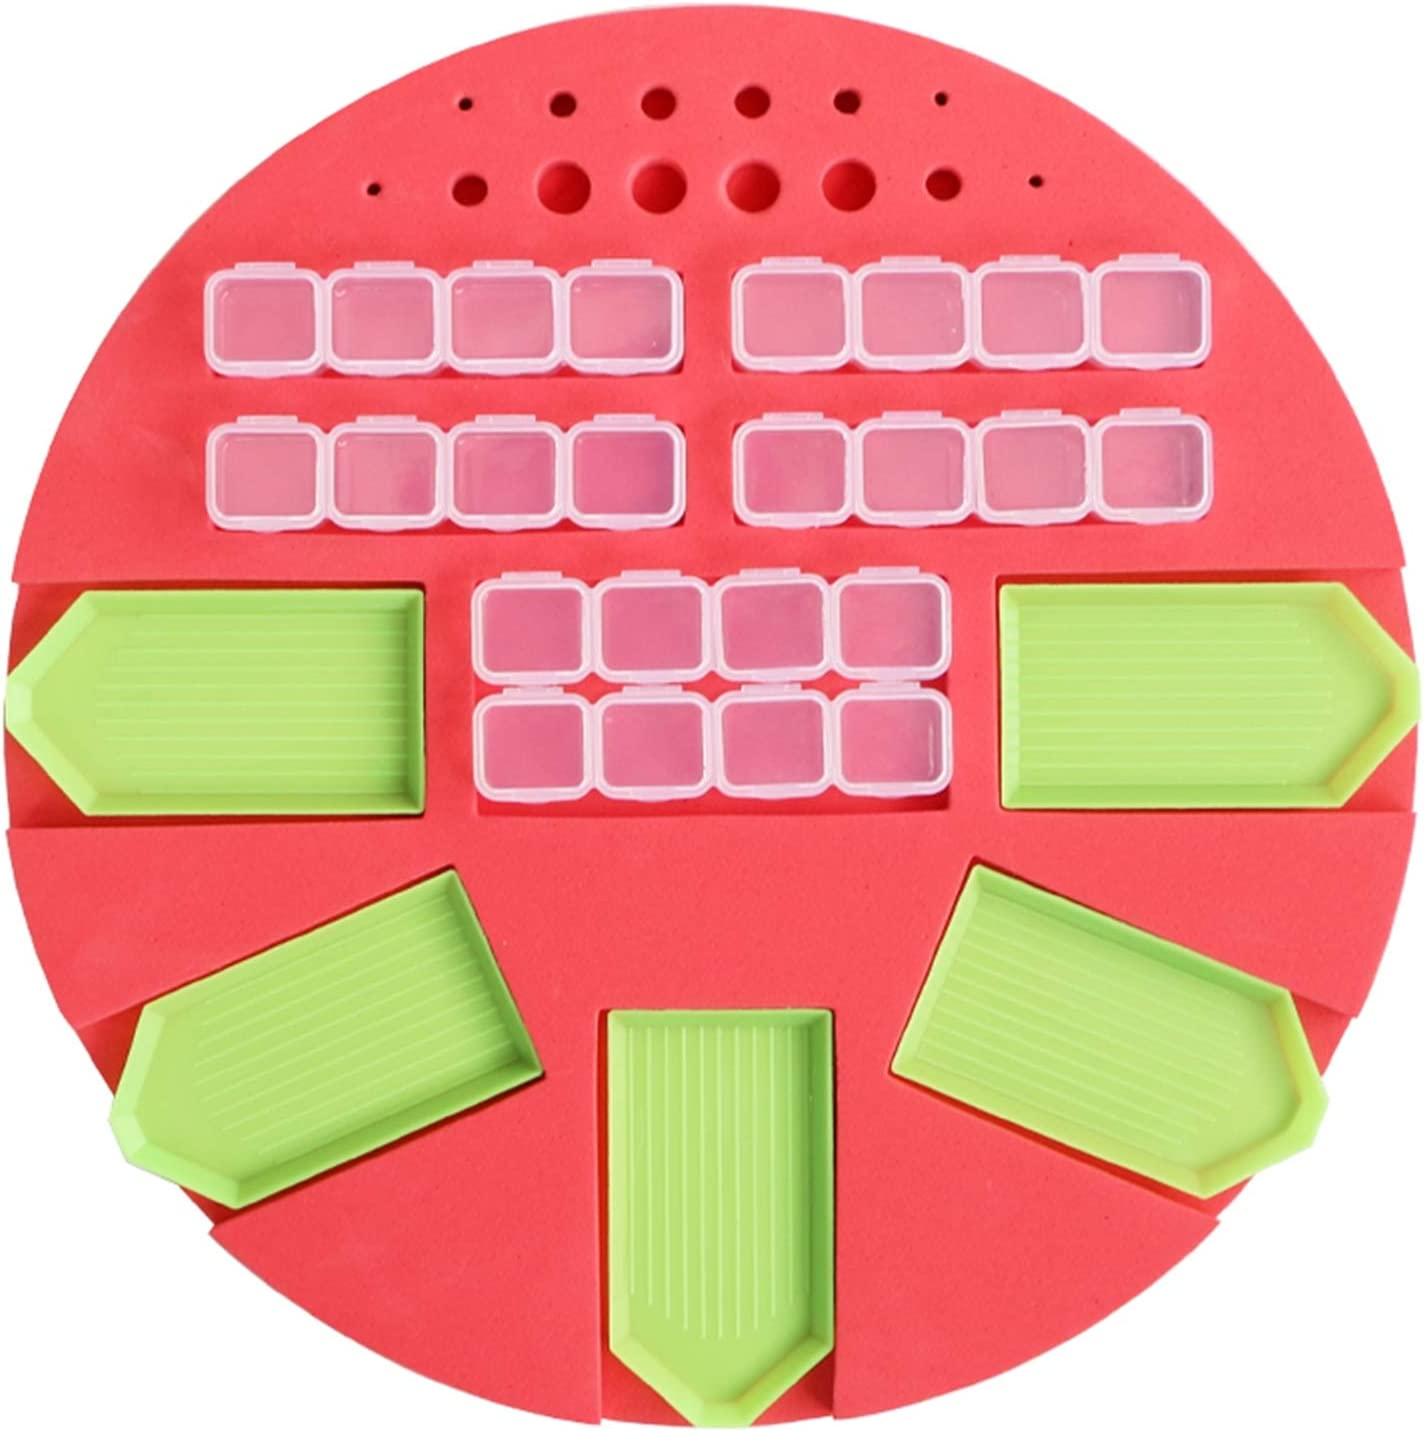 YOLOPARK Diamond Painting Accessories Tray Organizer,5 Slot Trays Round Holder for Tray Containers and Drill Pens A 5D Diamond Painting Tools Kits